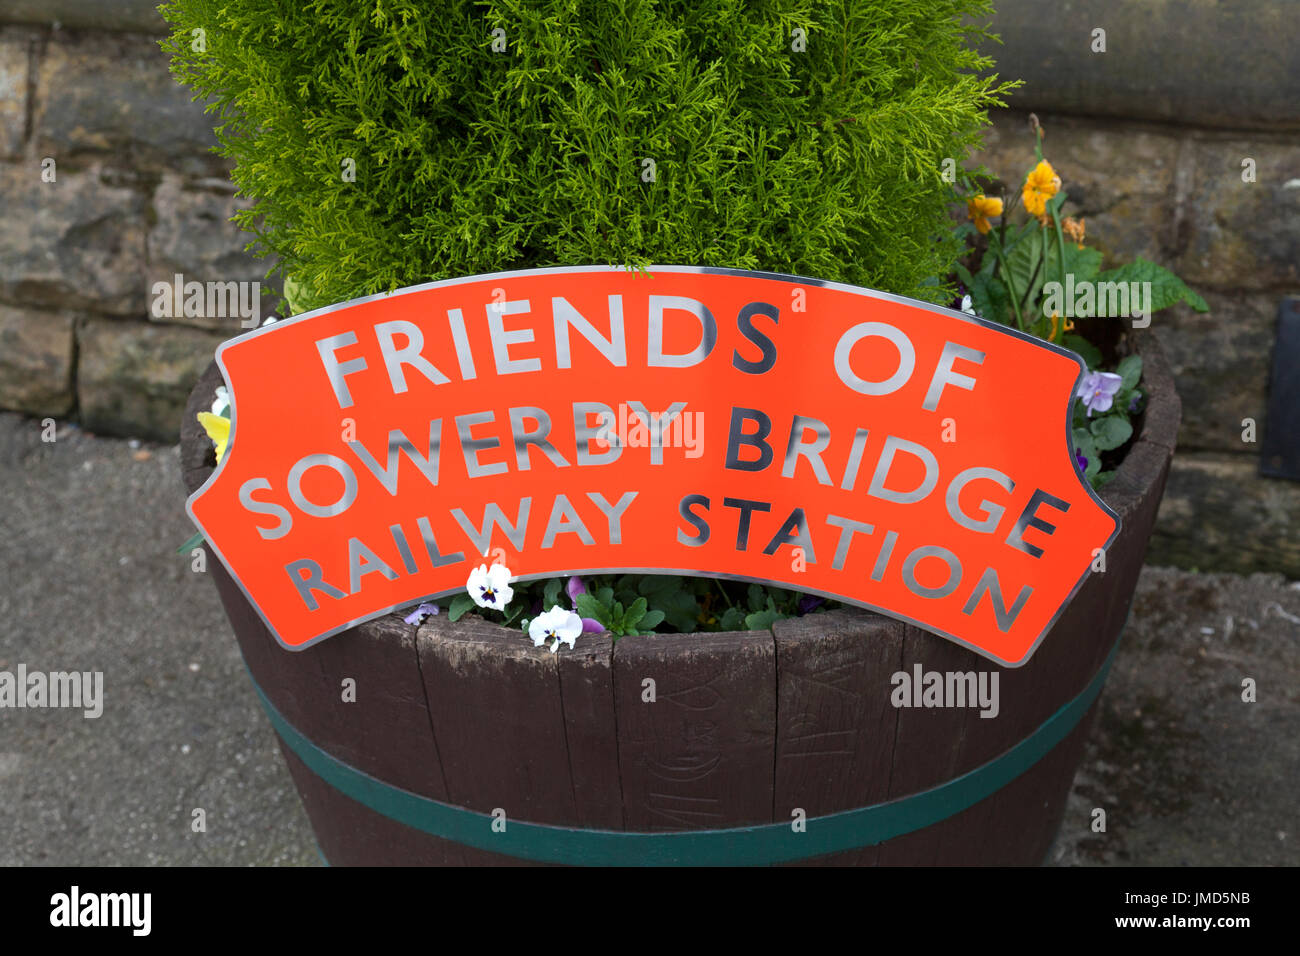 Friends of Sowerby Bridge Railway Station sign, West Yorkshire - Stock Image